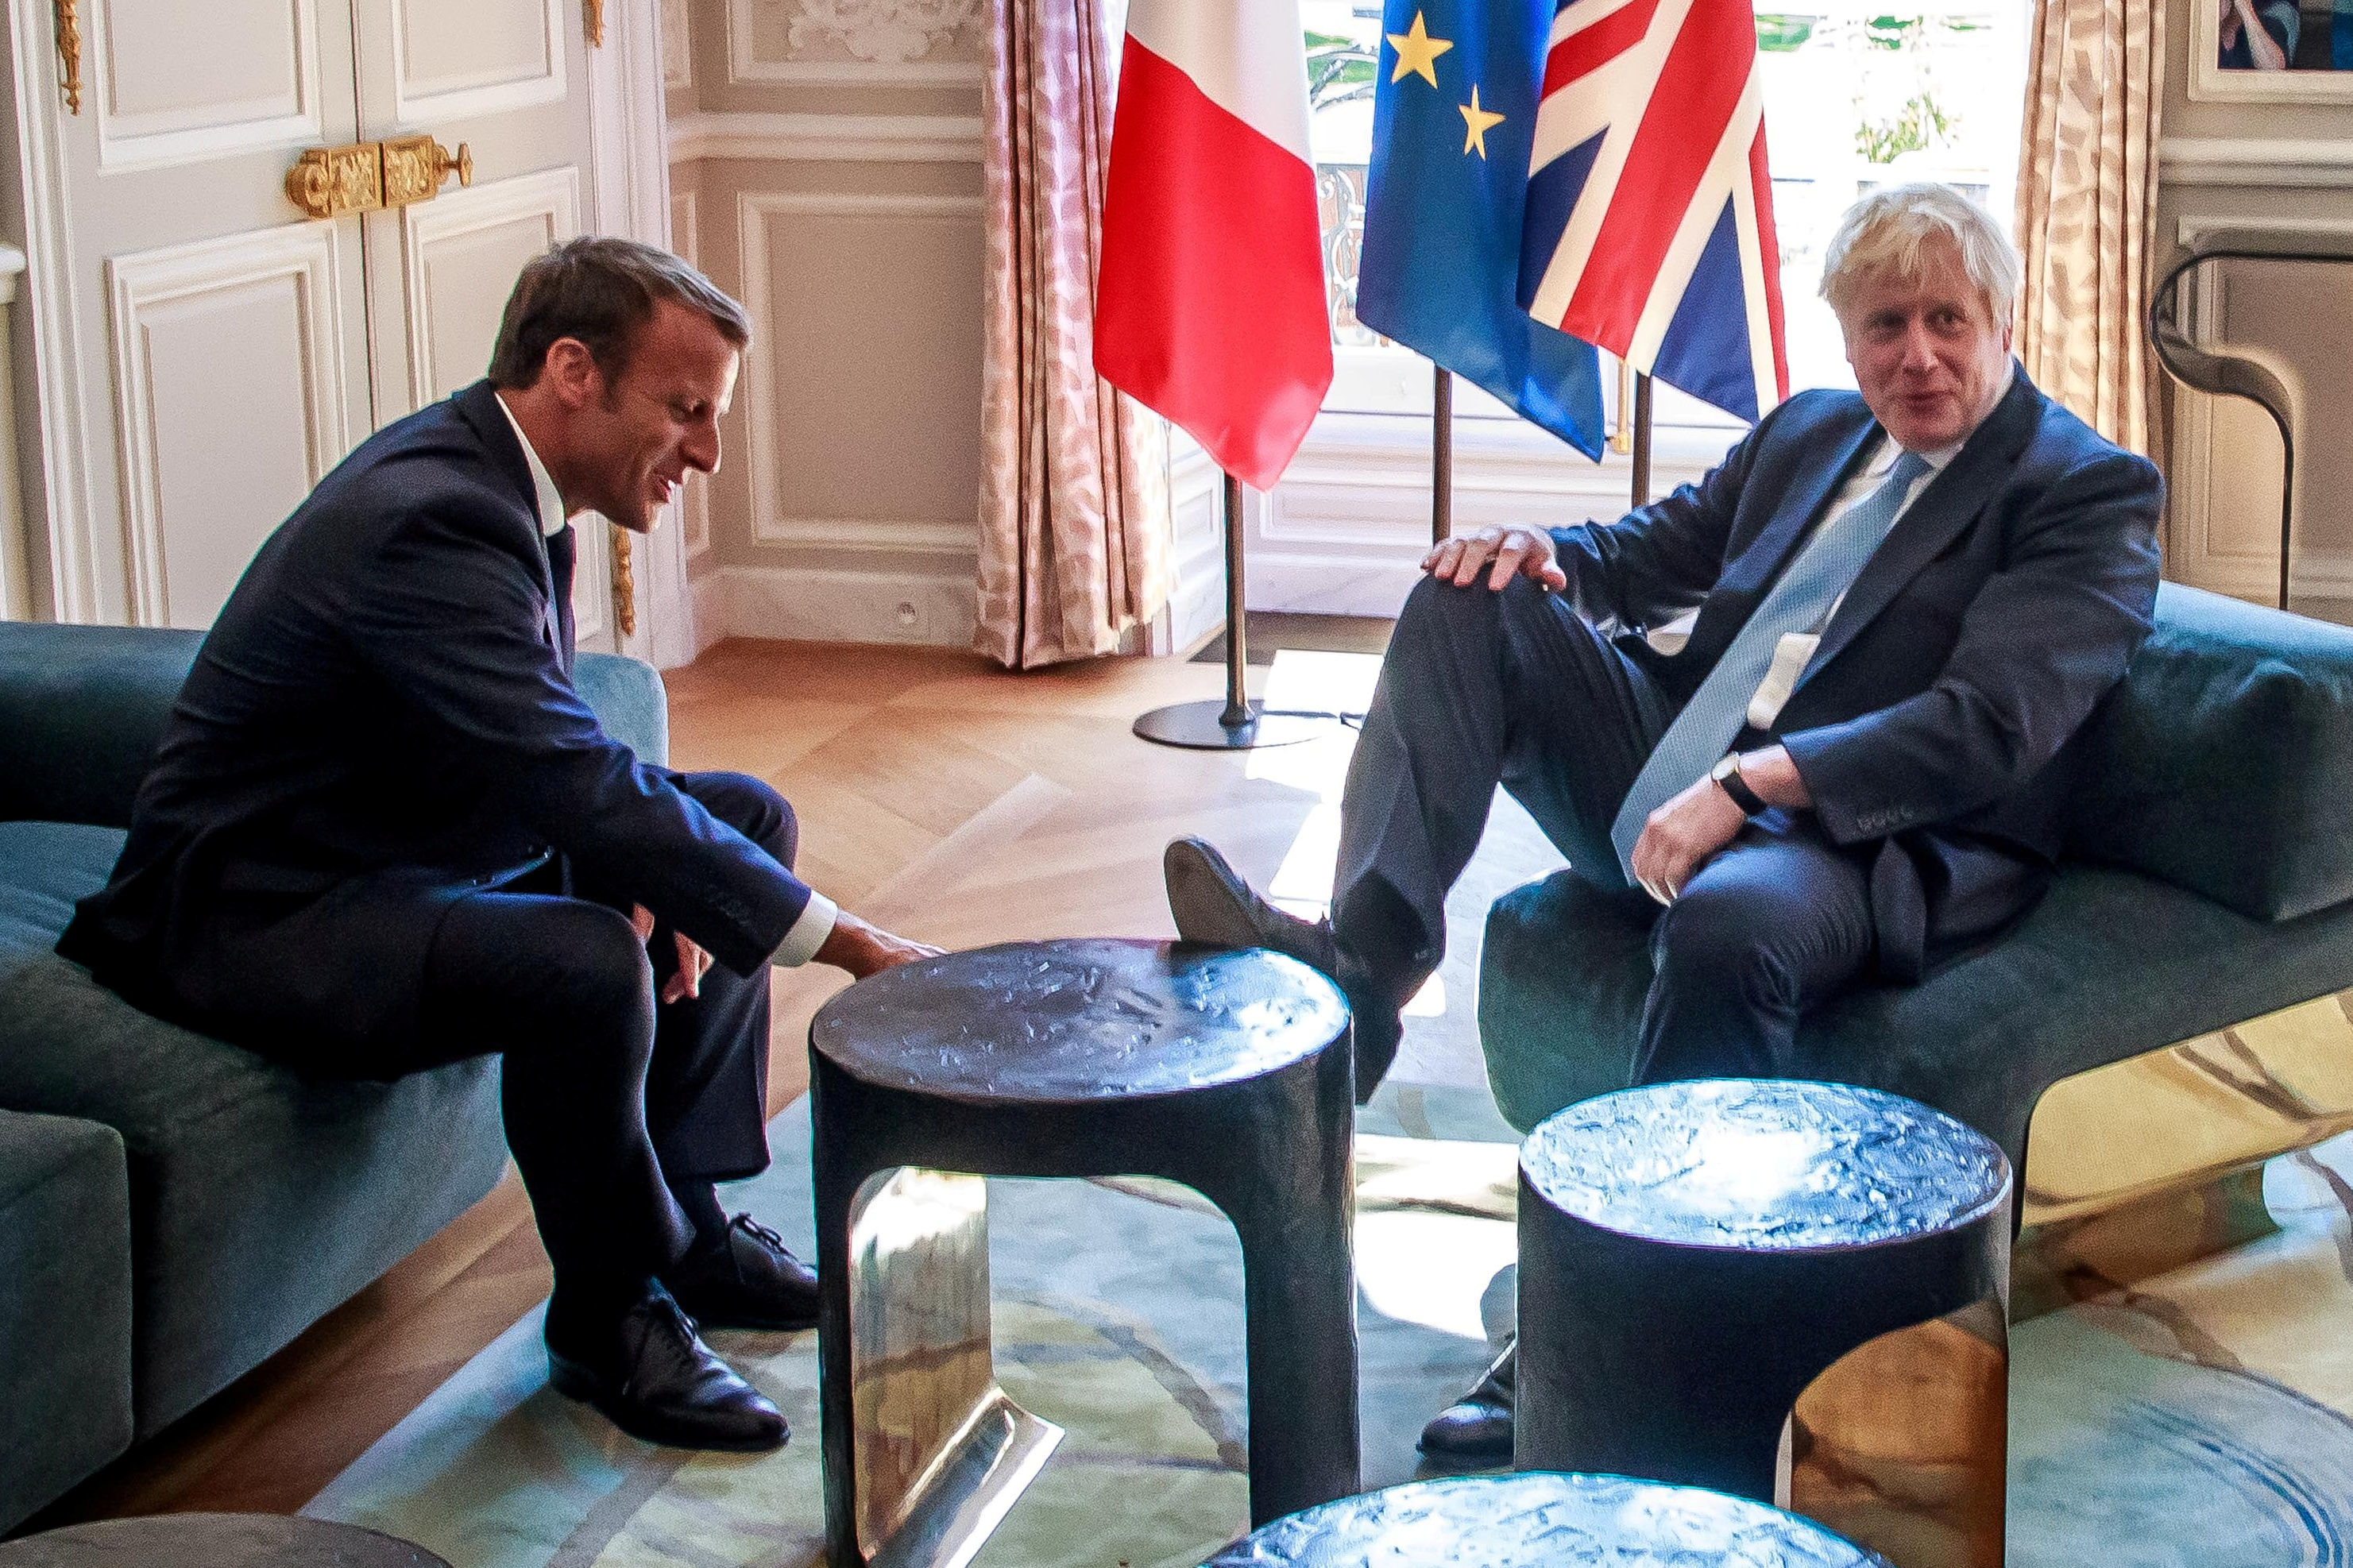 French President Emmanuel Macron and British Prime Minister Boris Johnson speak during a meeting at the Elysee Palace in Paris, France, August 22, 2019.